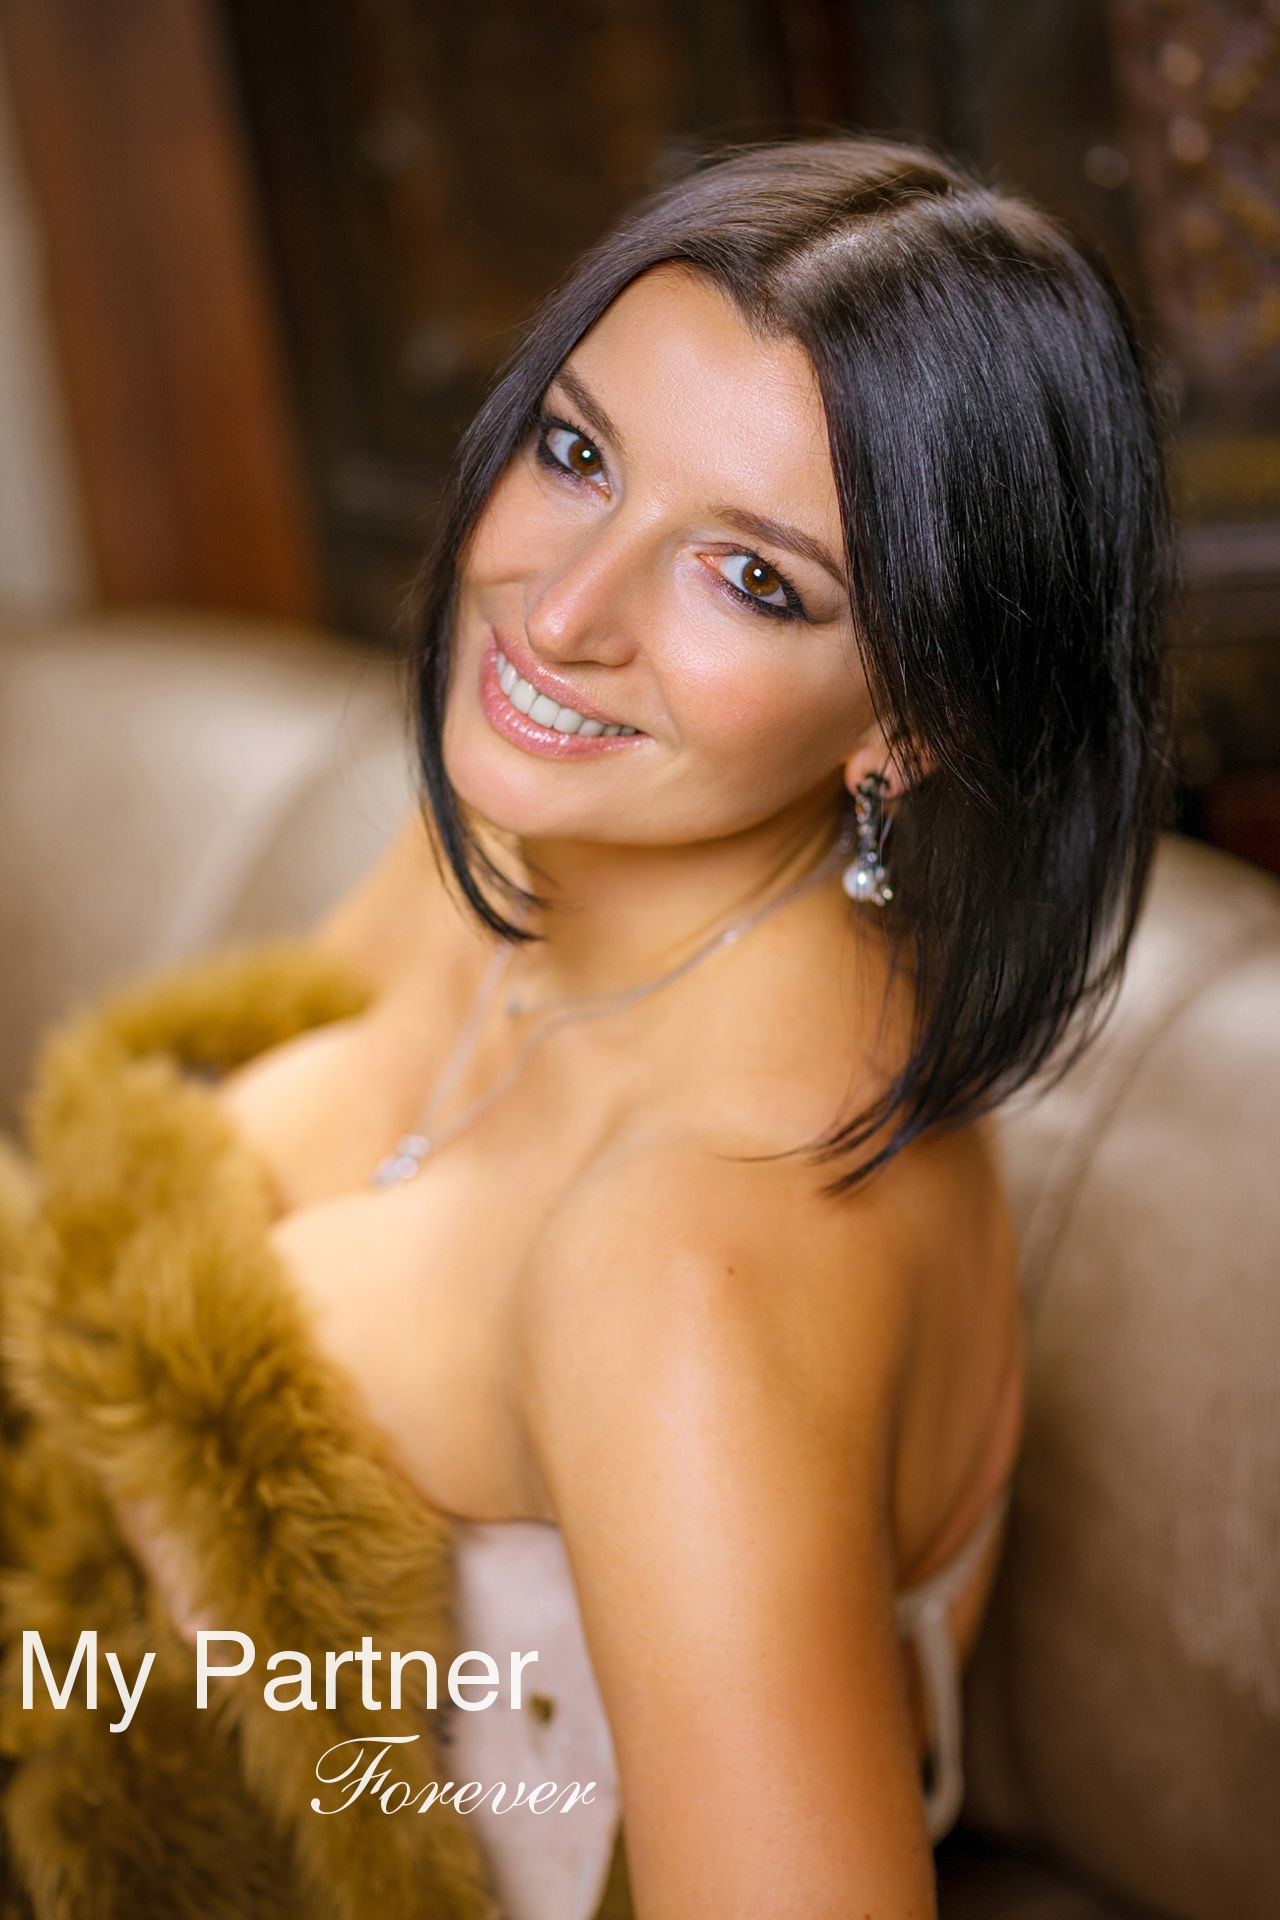 Pretty Woman from Ukraine - Nataliya from Dniepropetrovsk, Ukraine